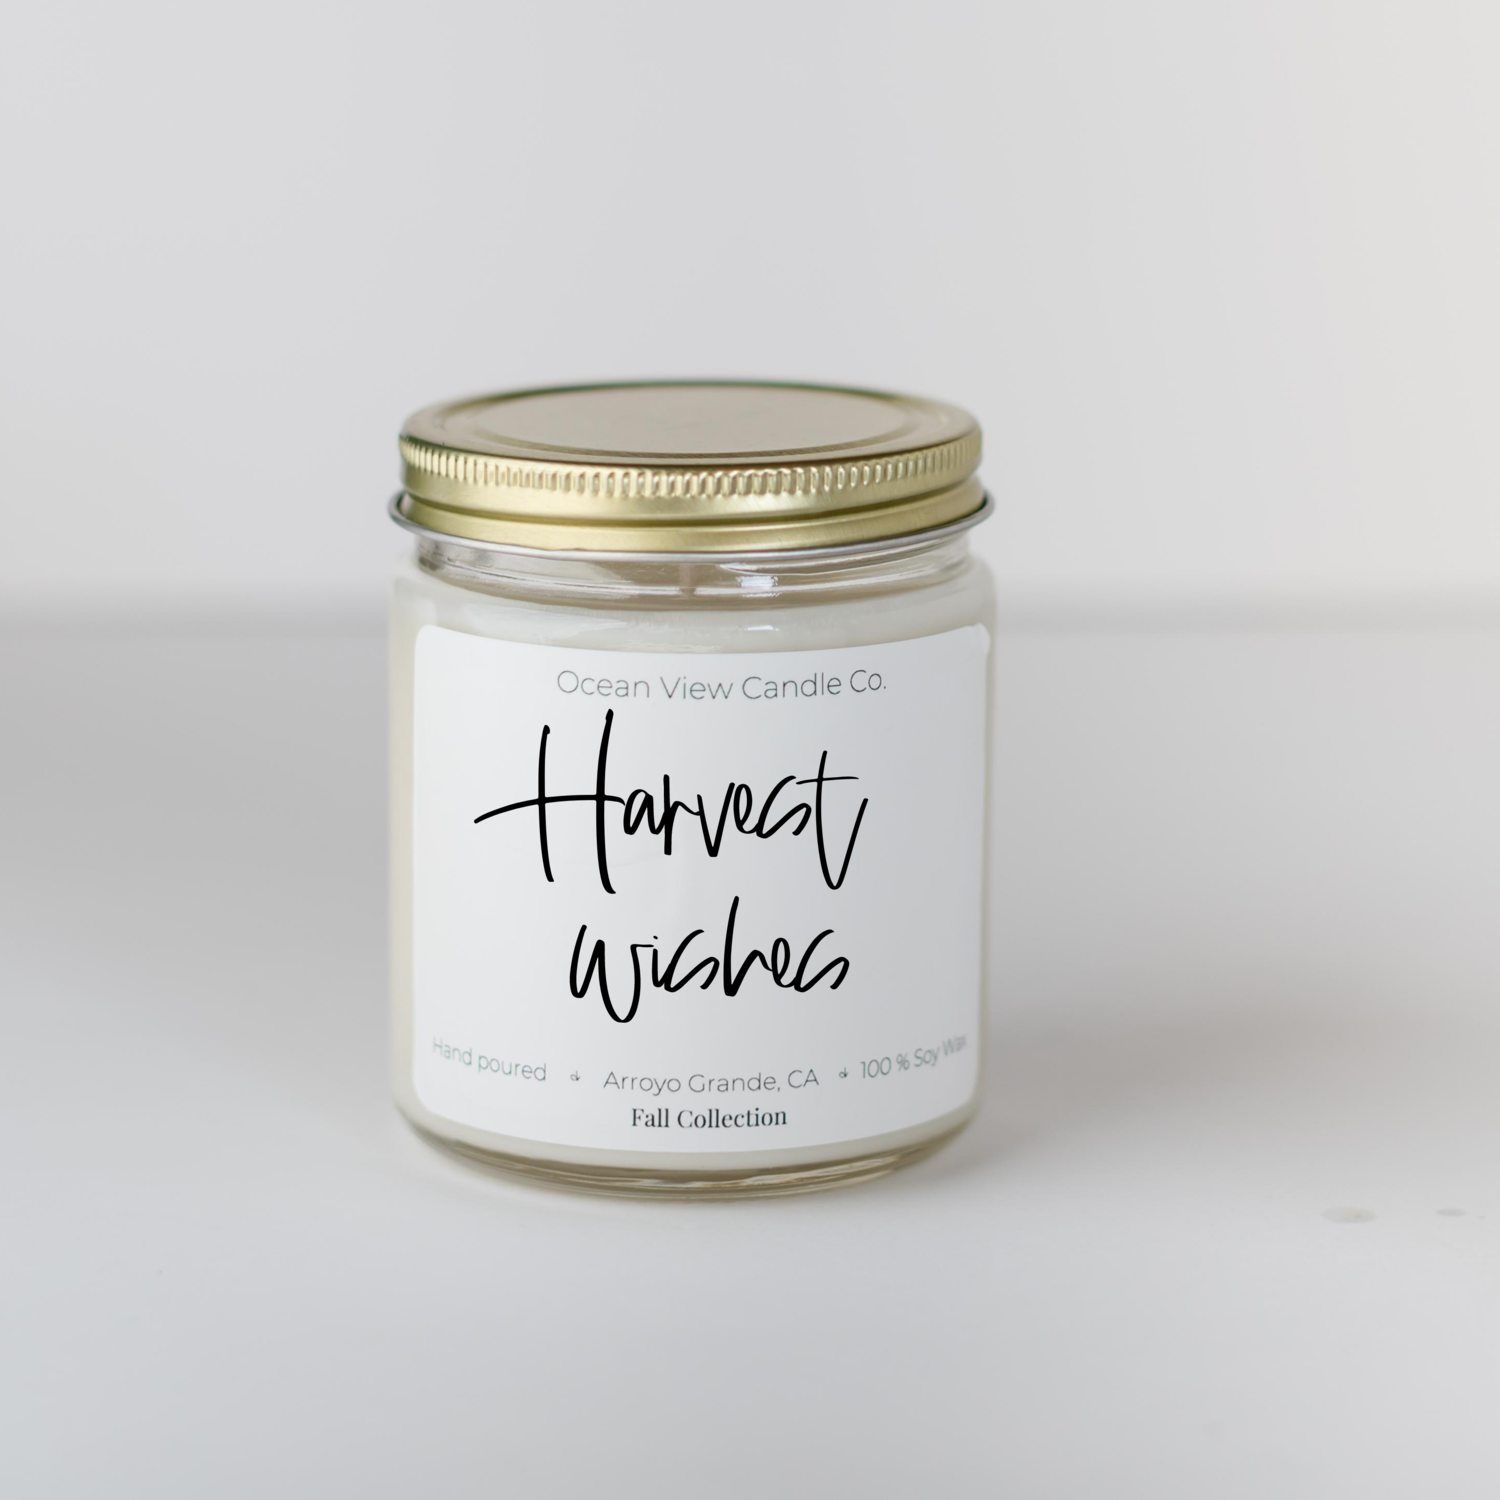 Harvest Orchard Soy Wax Scented Candle- 4 oz